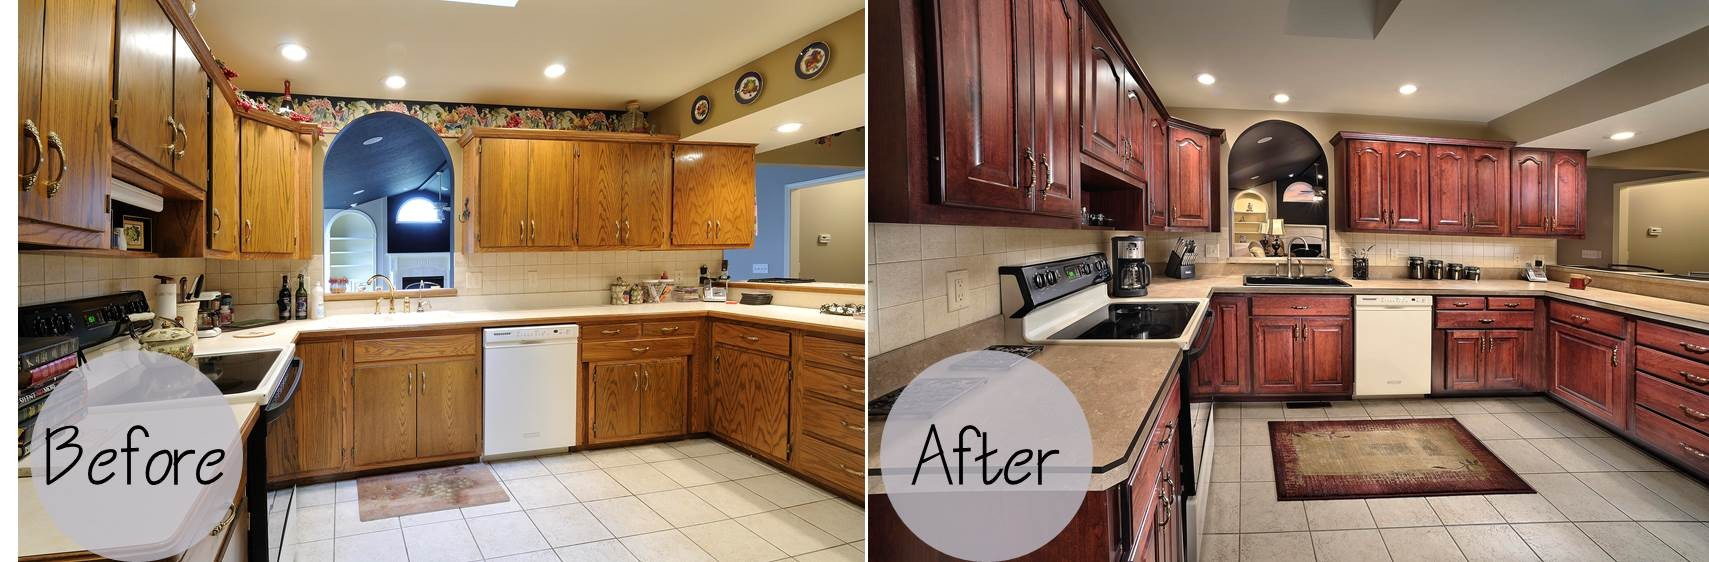 Kitchen Cabinet Refacing Before And After